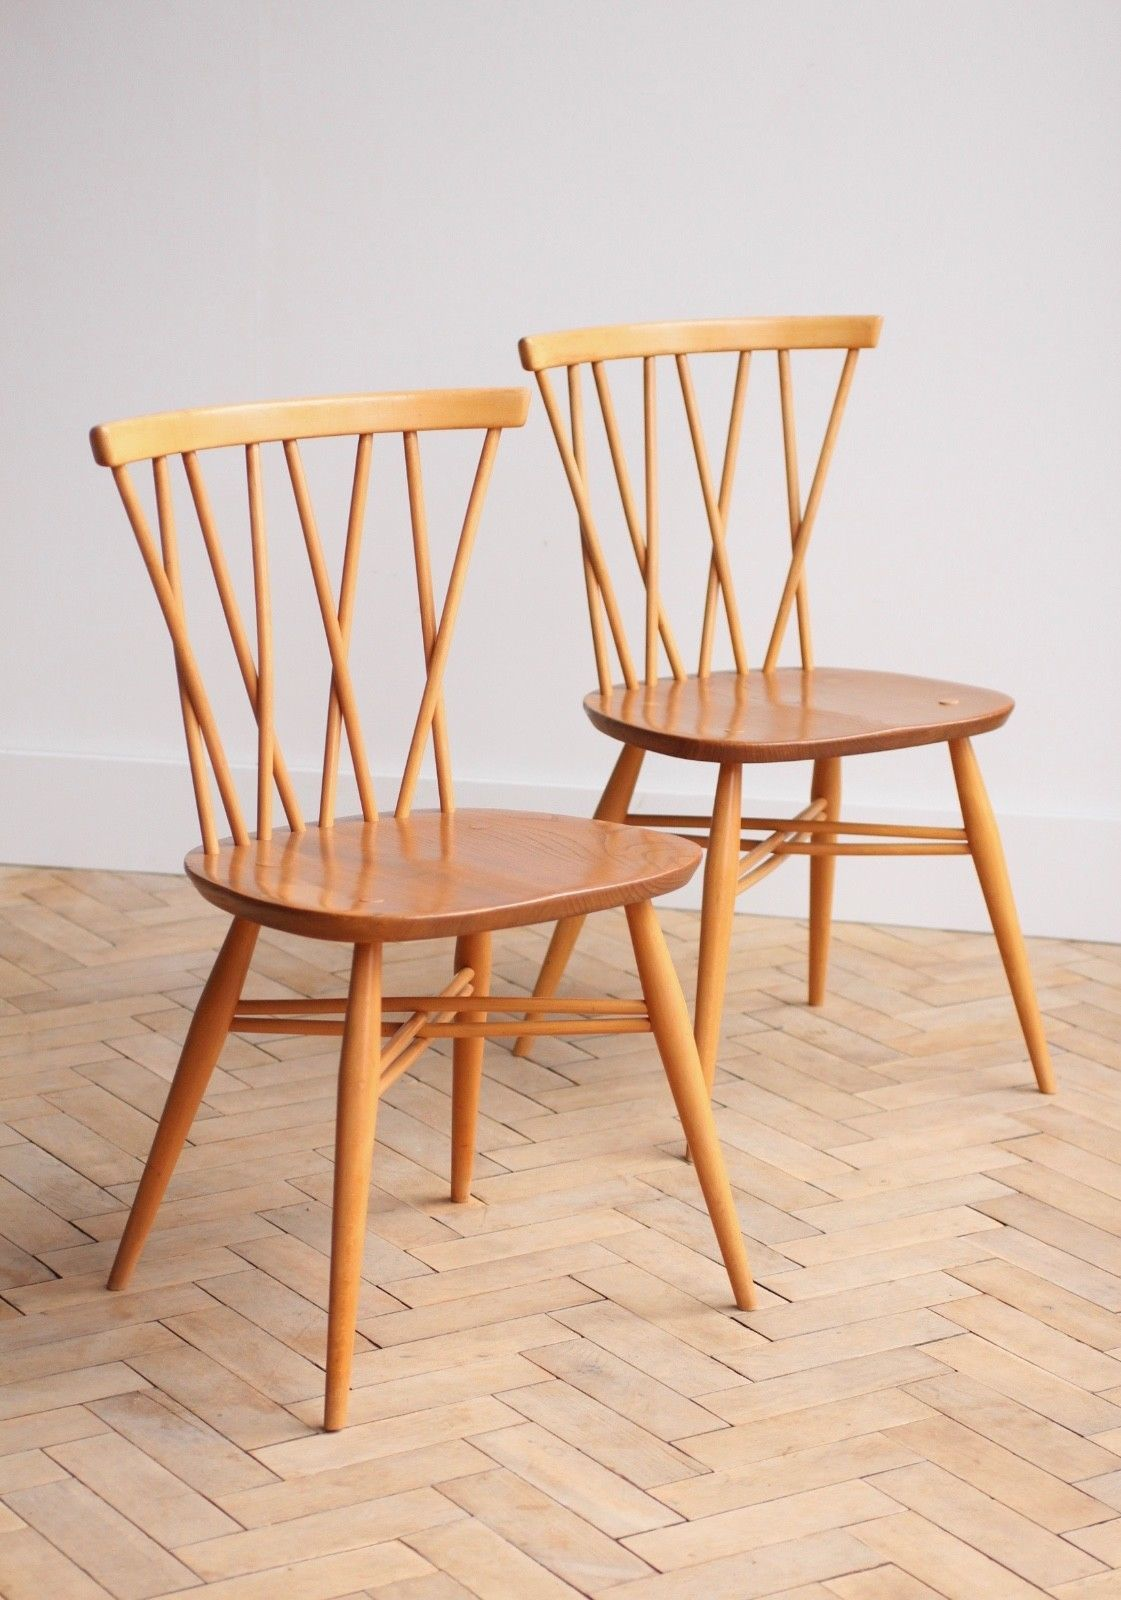 vintage-retro-pair-of-ercol-elm-candlestick-dining-chairs-mid-century